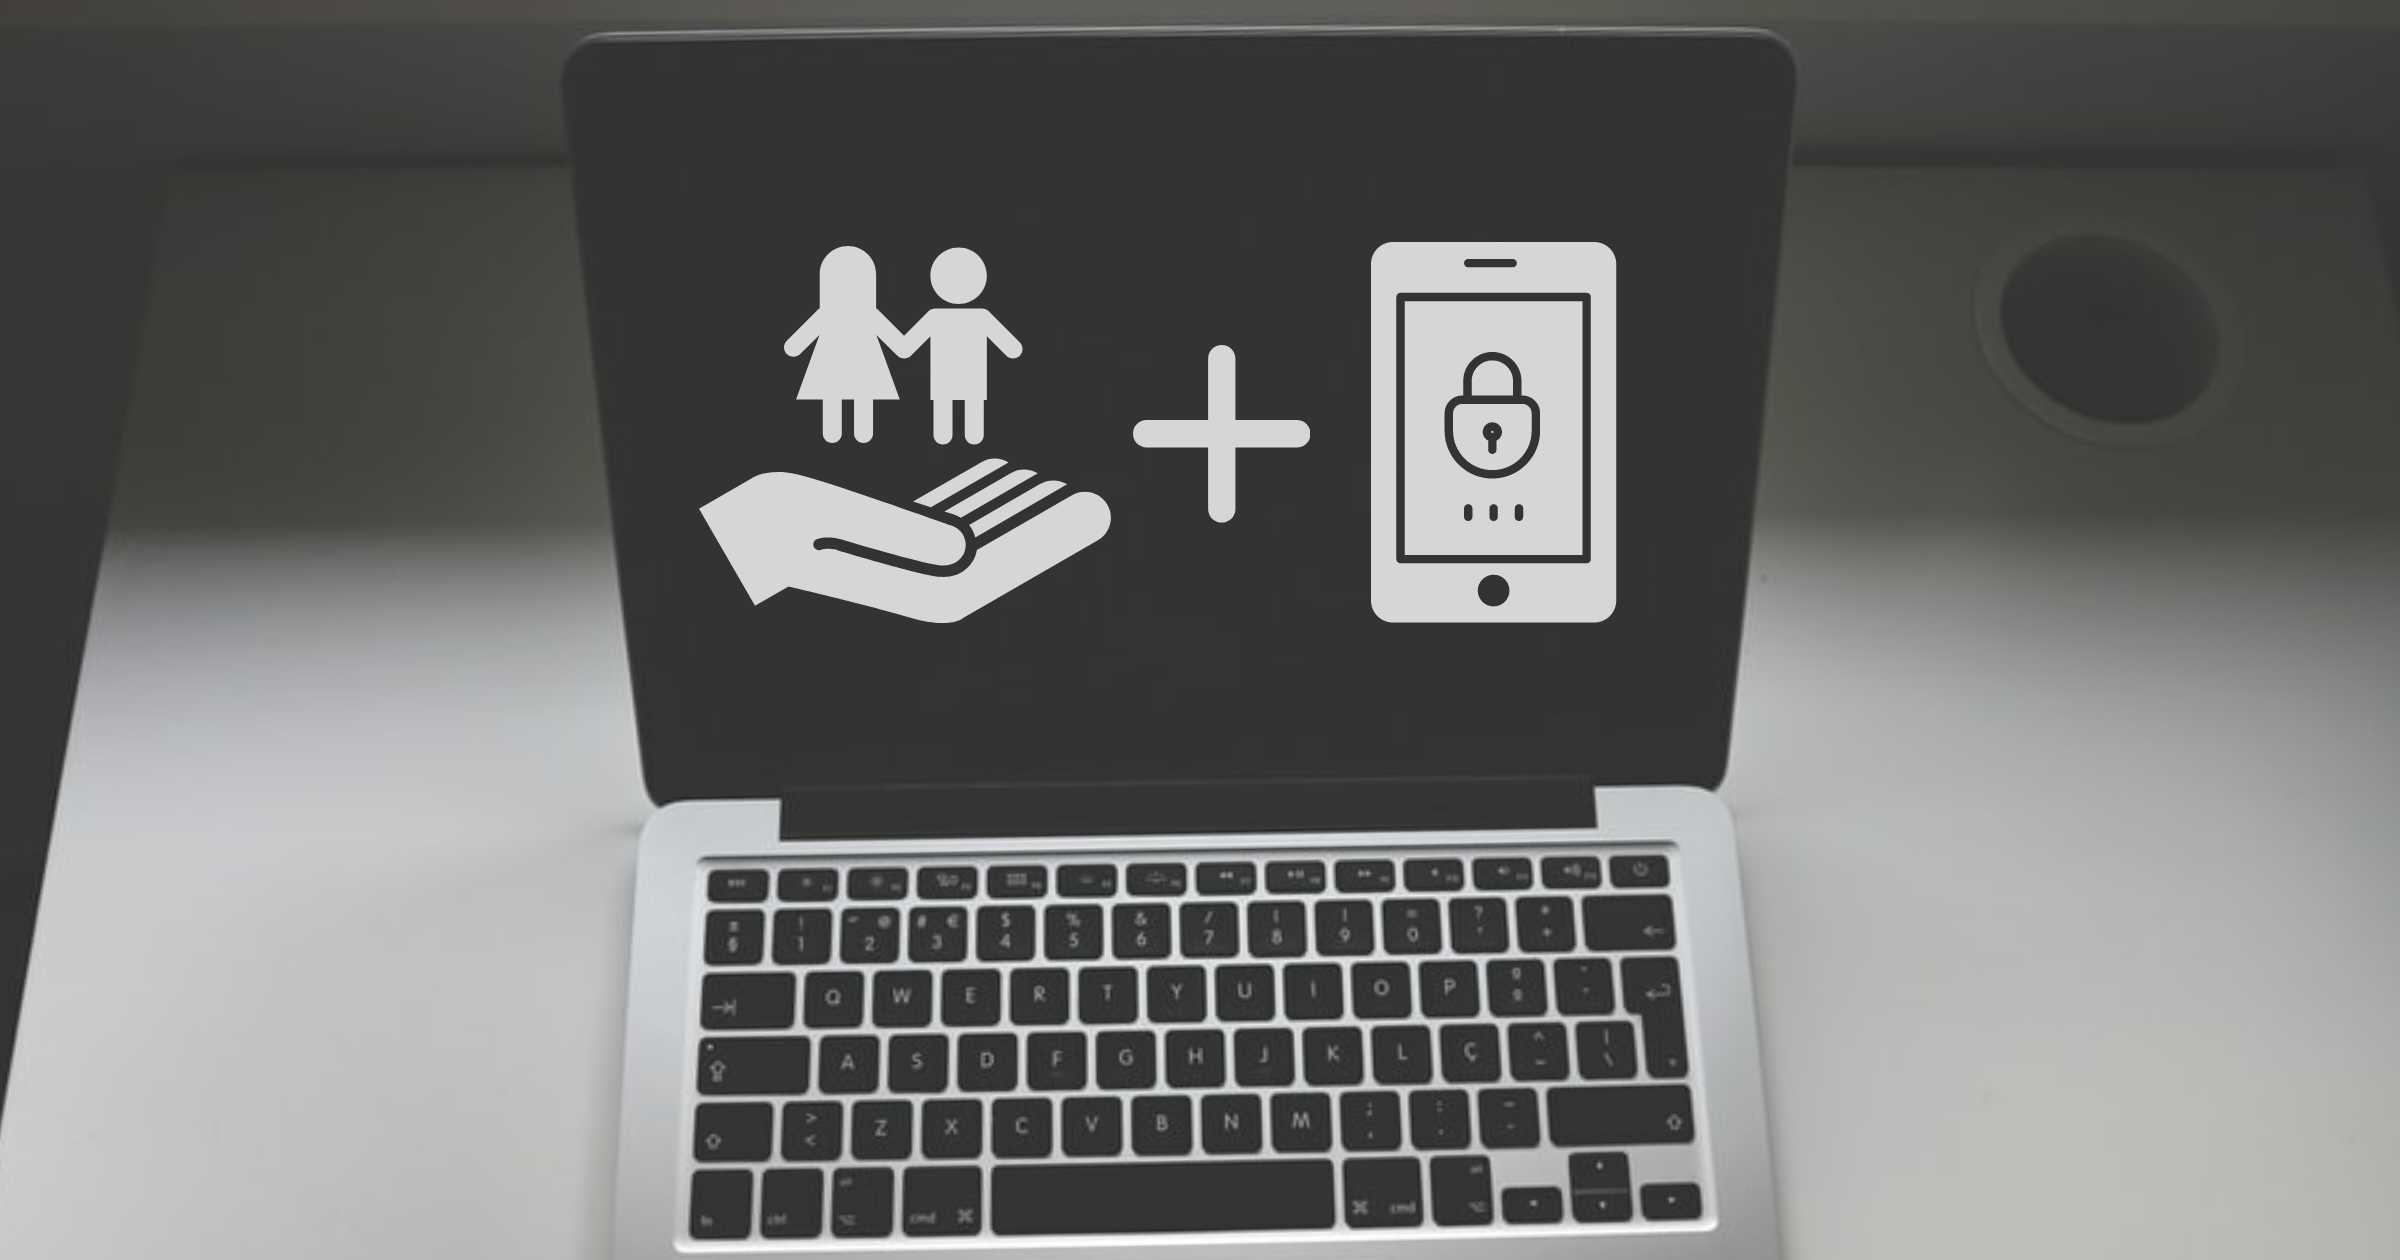 Laptop with an icon representing online child safety and a second icon representing user privacy and encryption underscores how the EARN IT Act can protect both